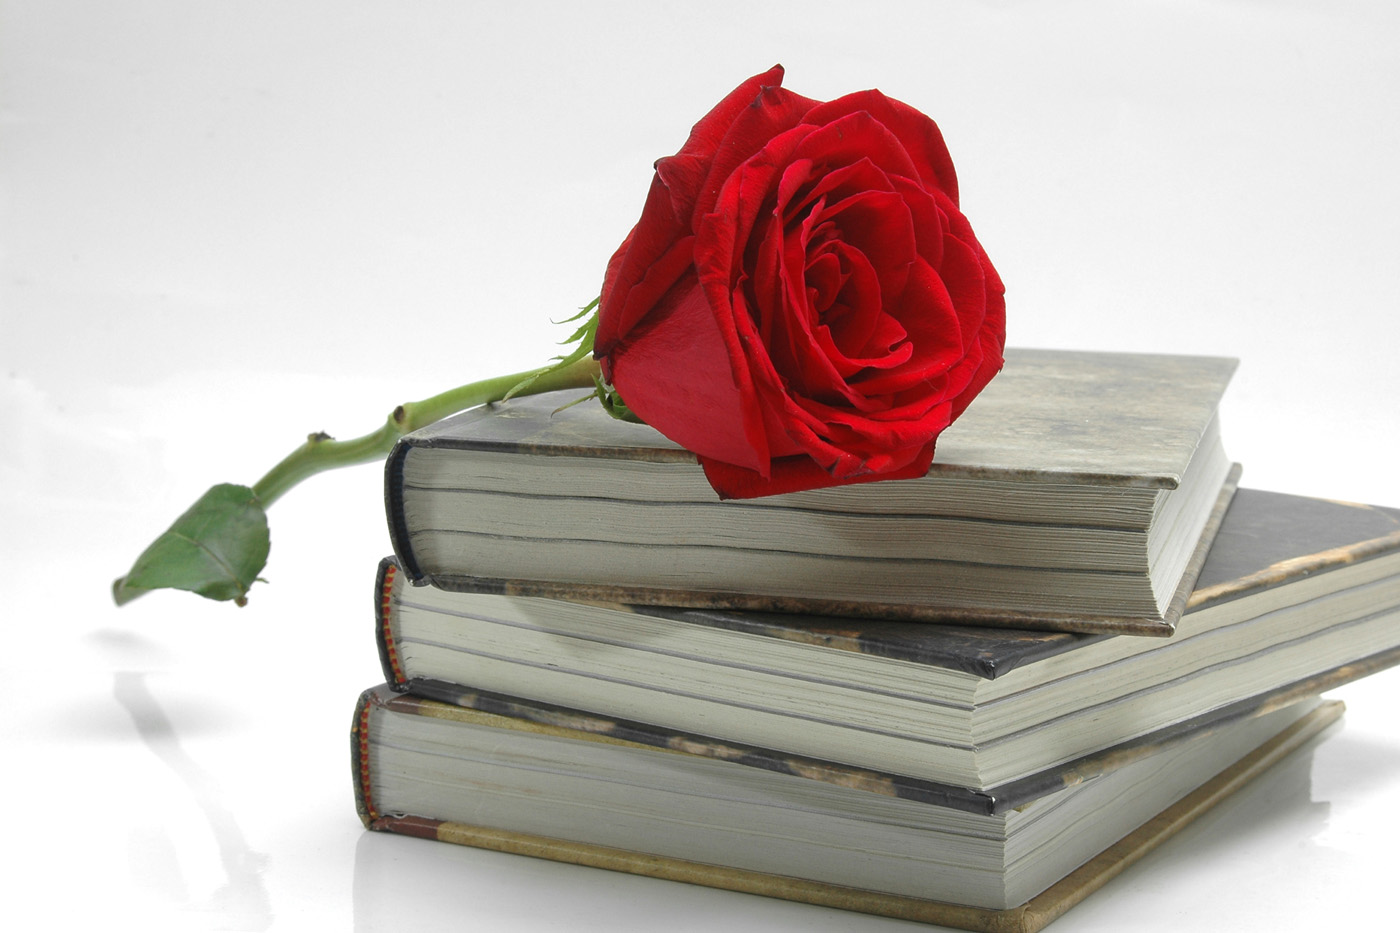 Old books and Roses 31569